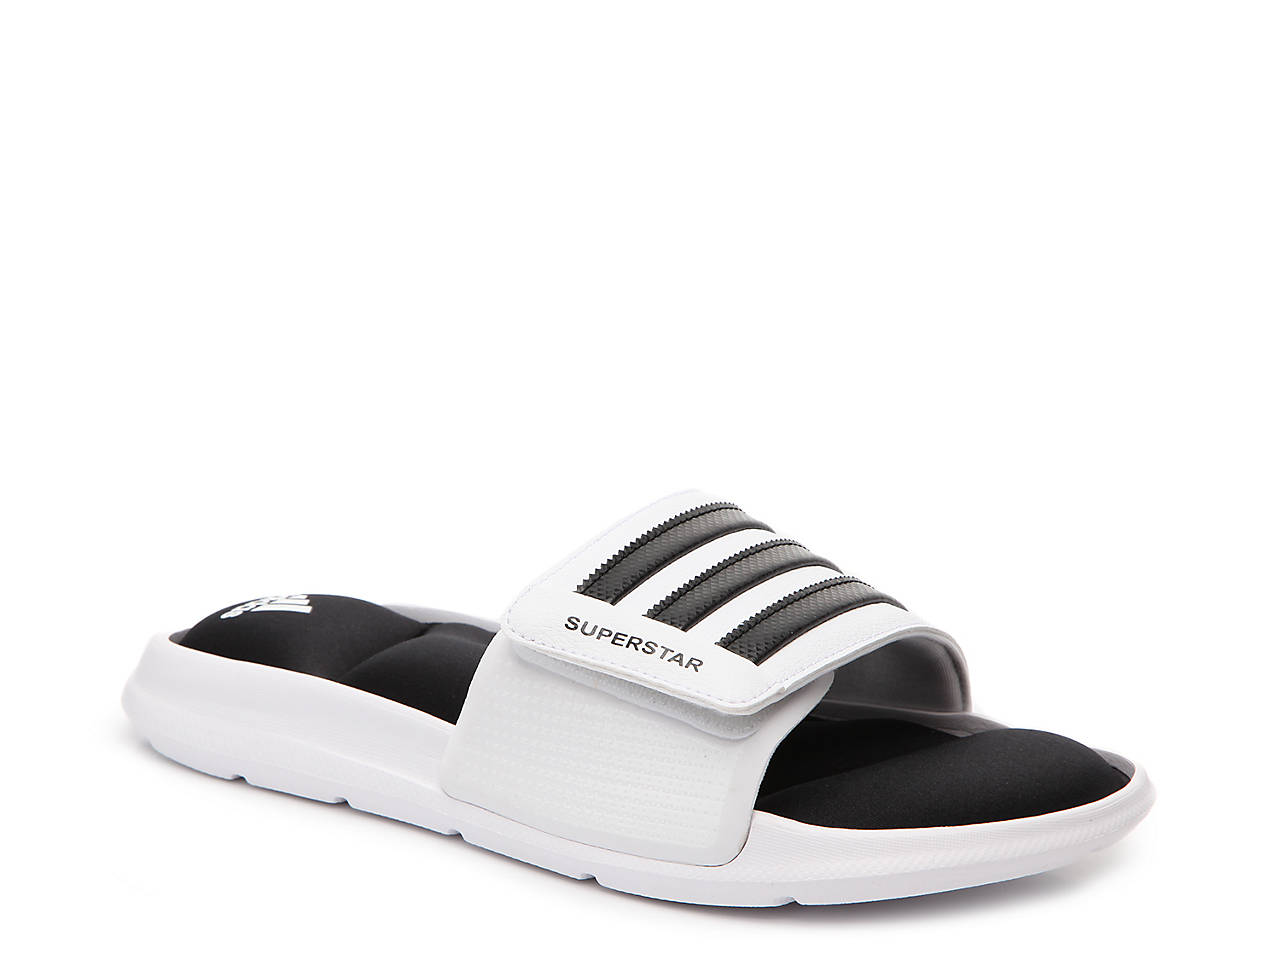 478a75ac49d ... adidas superstar 5g slides